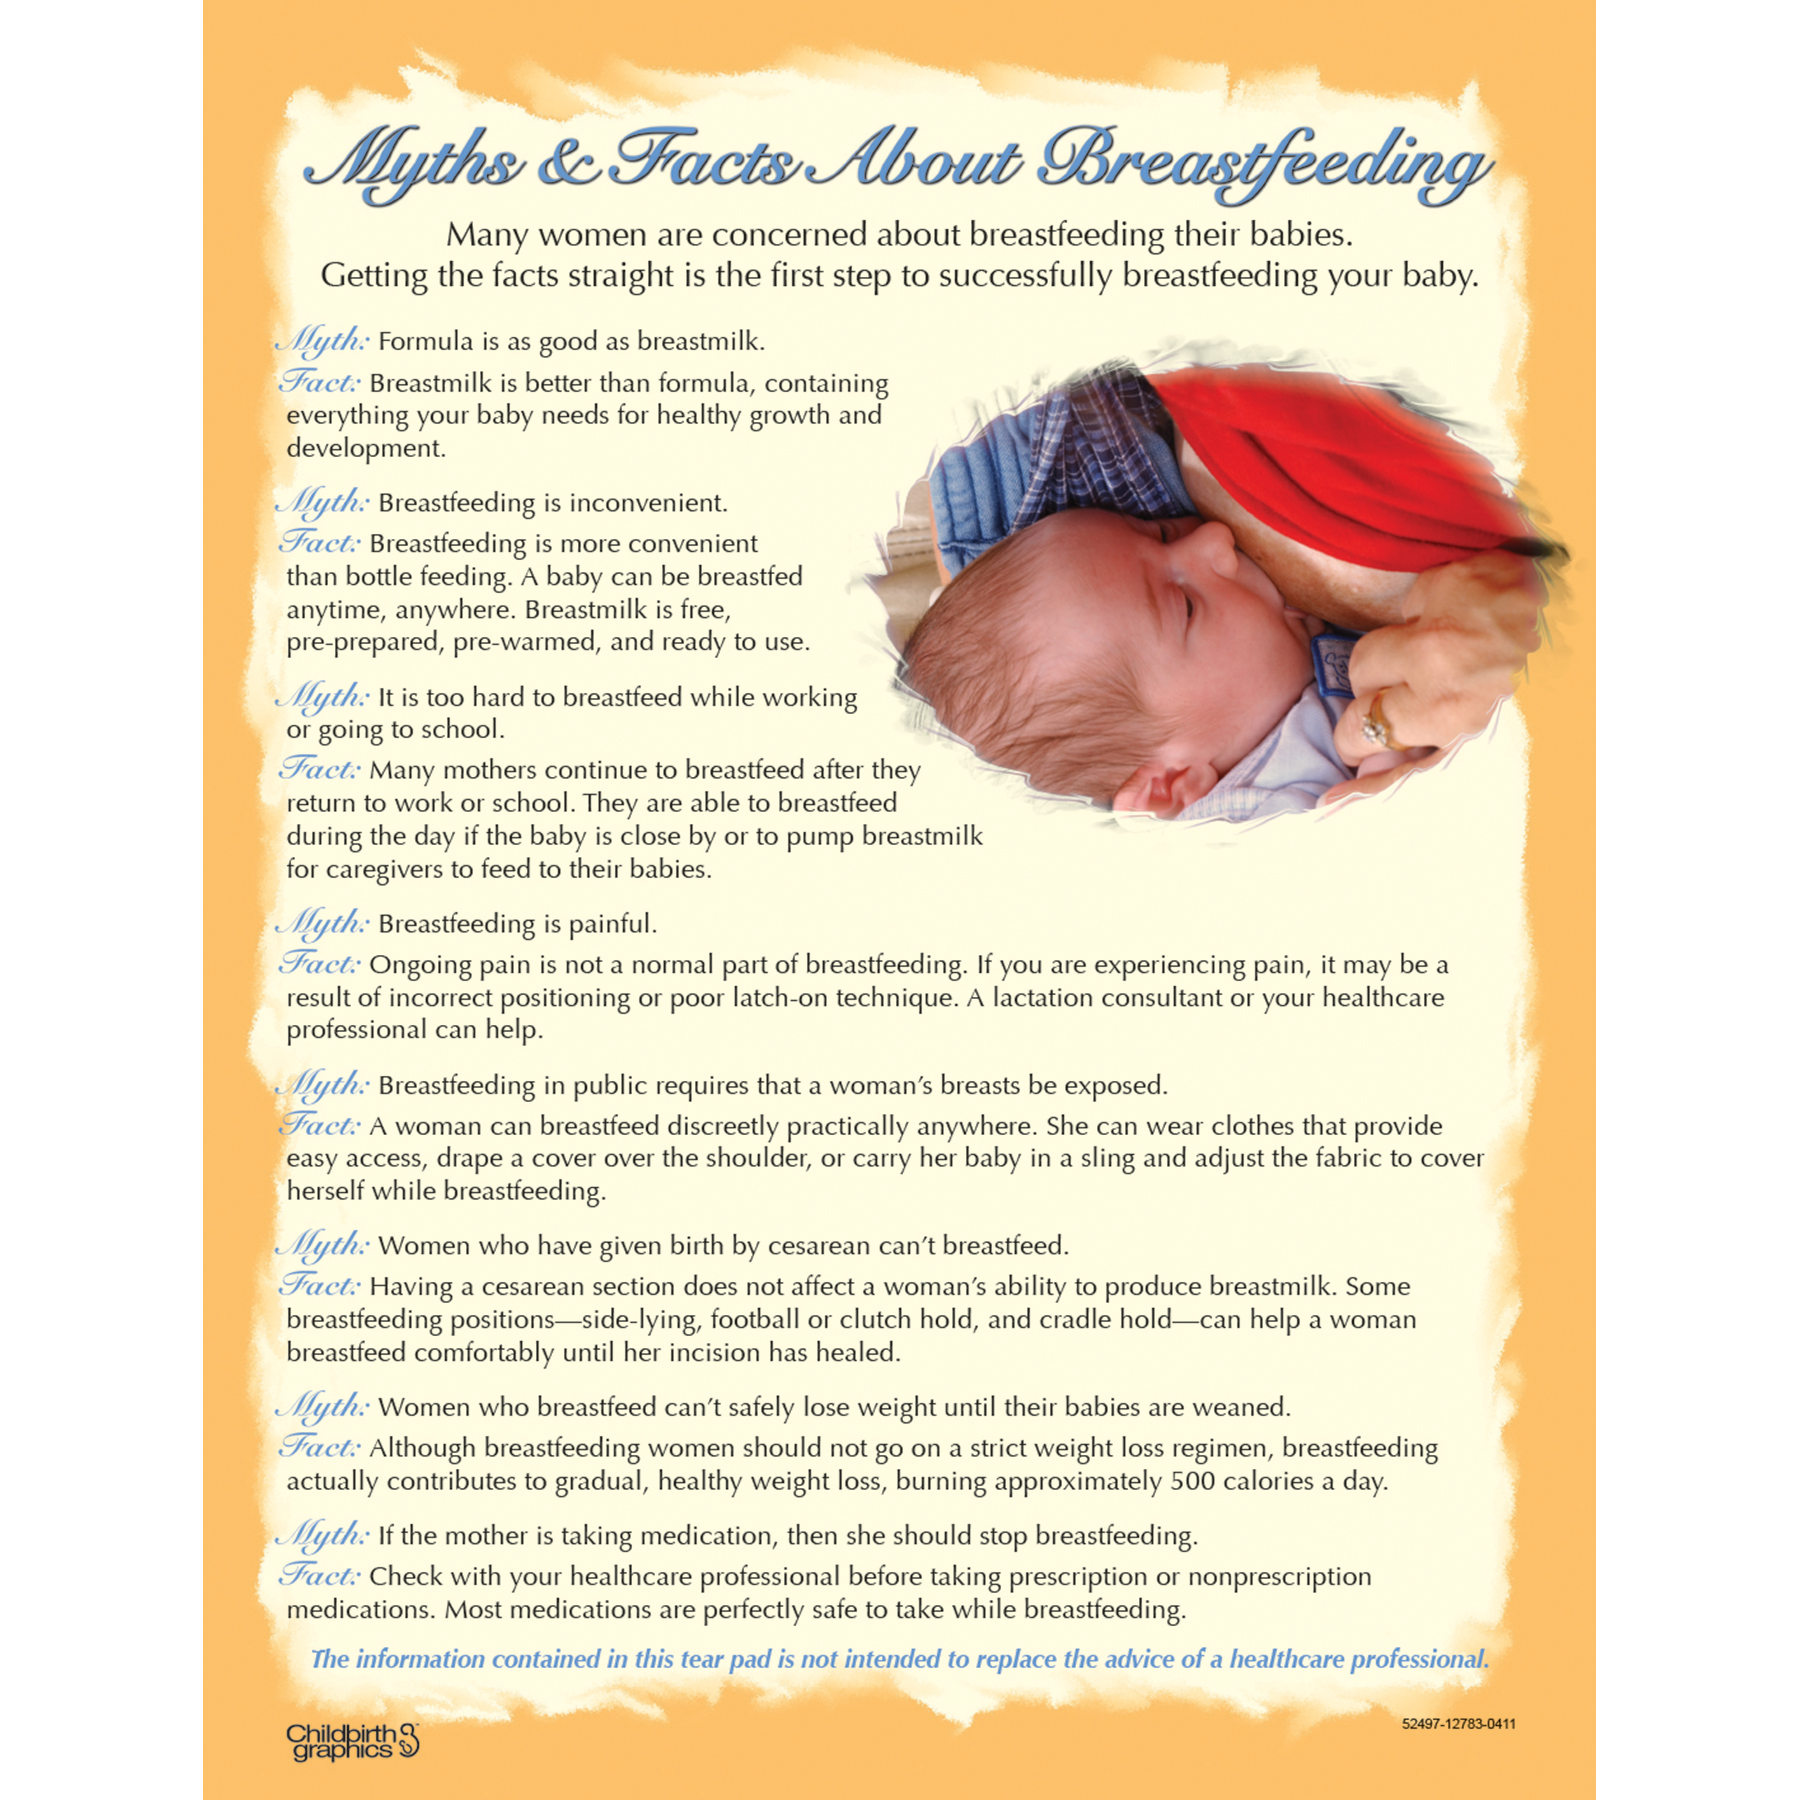 Myths & Facts About Breastfeeding full color Tear Pad, Childbirth Graphics, 52497